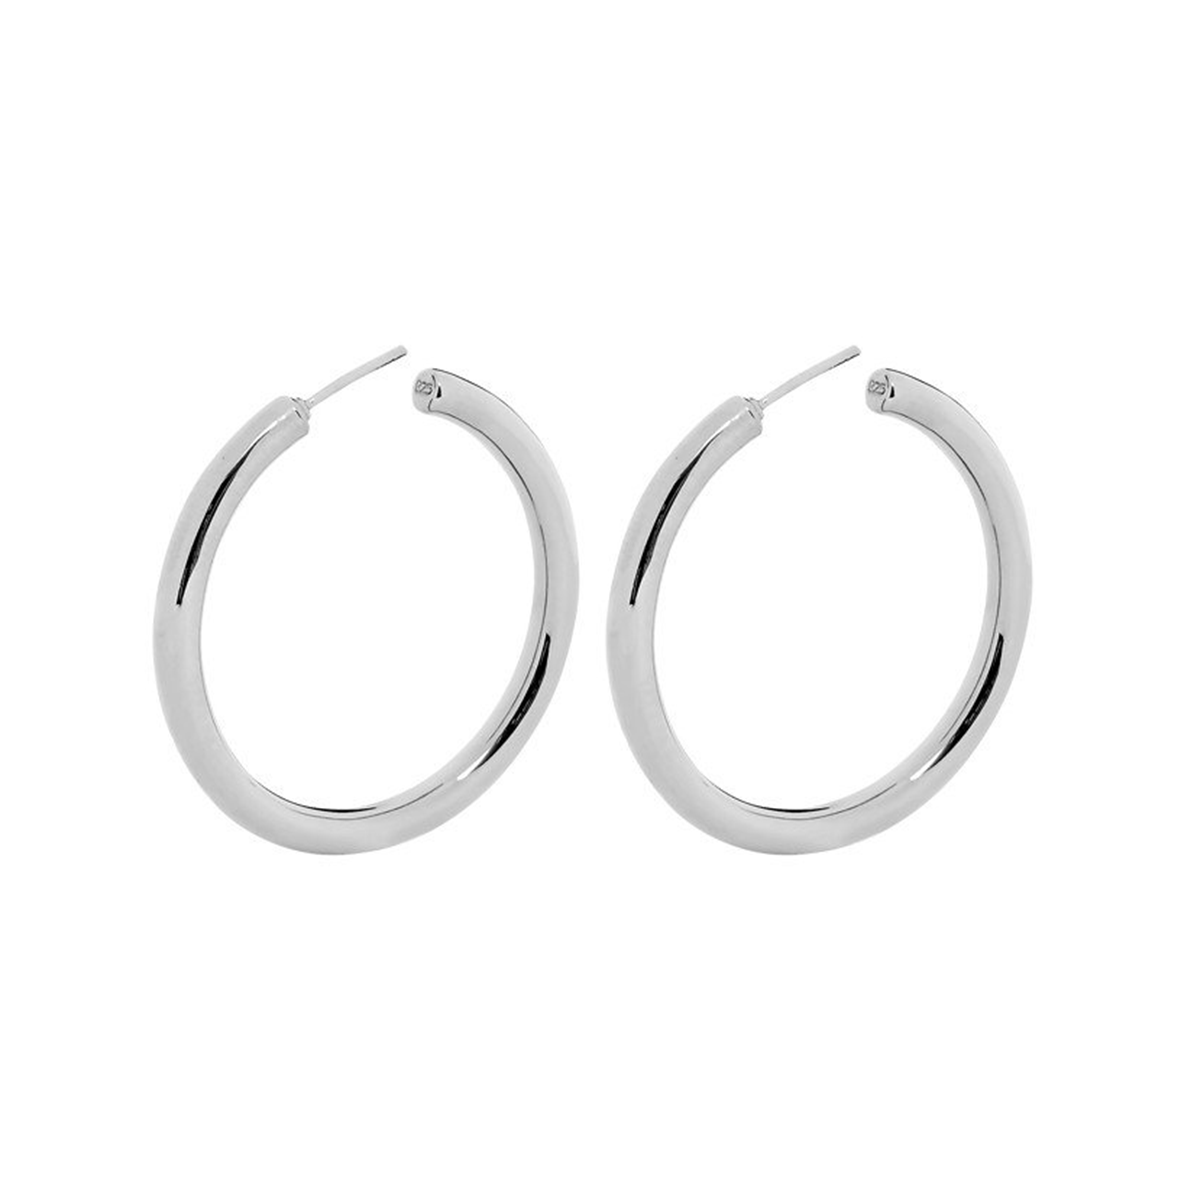 silver 925 40mm tube hoop earrings